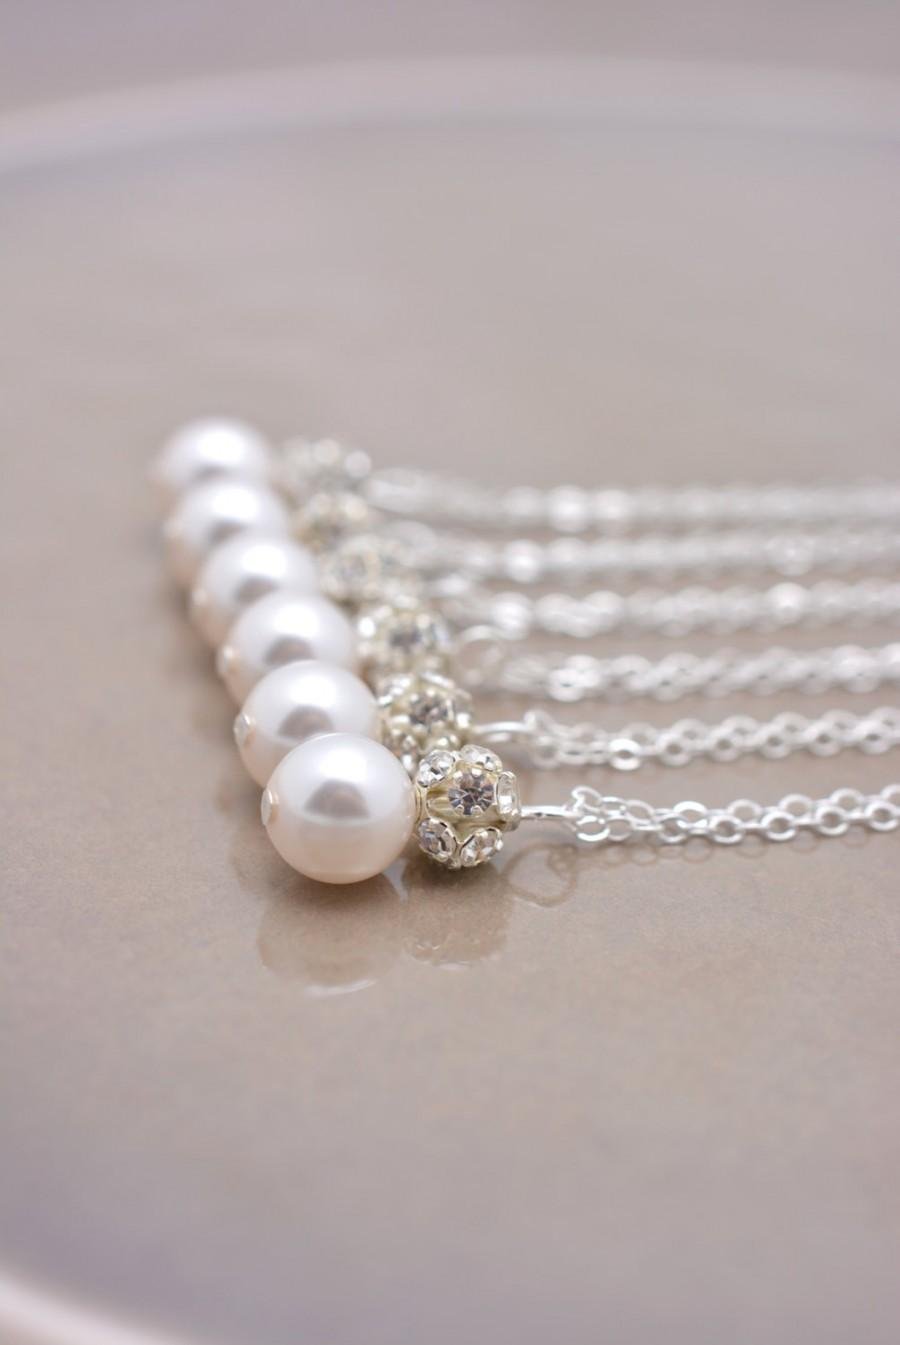 Свадьба - Set of 5 Bridesmaid Necklaces, 5 Pearl and Rhinestone Necklaces, Pearl and Crystal Necklaces, Bridesmaid Pearl Pendant Necklaces 0192